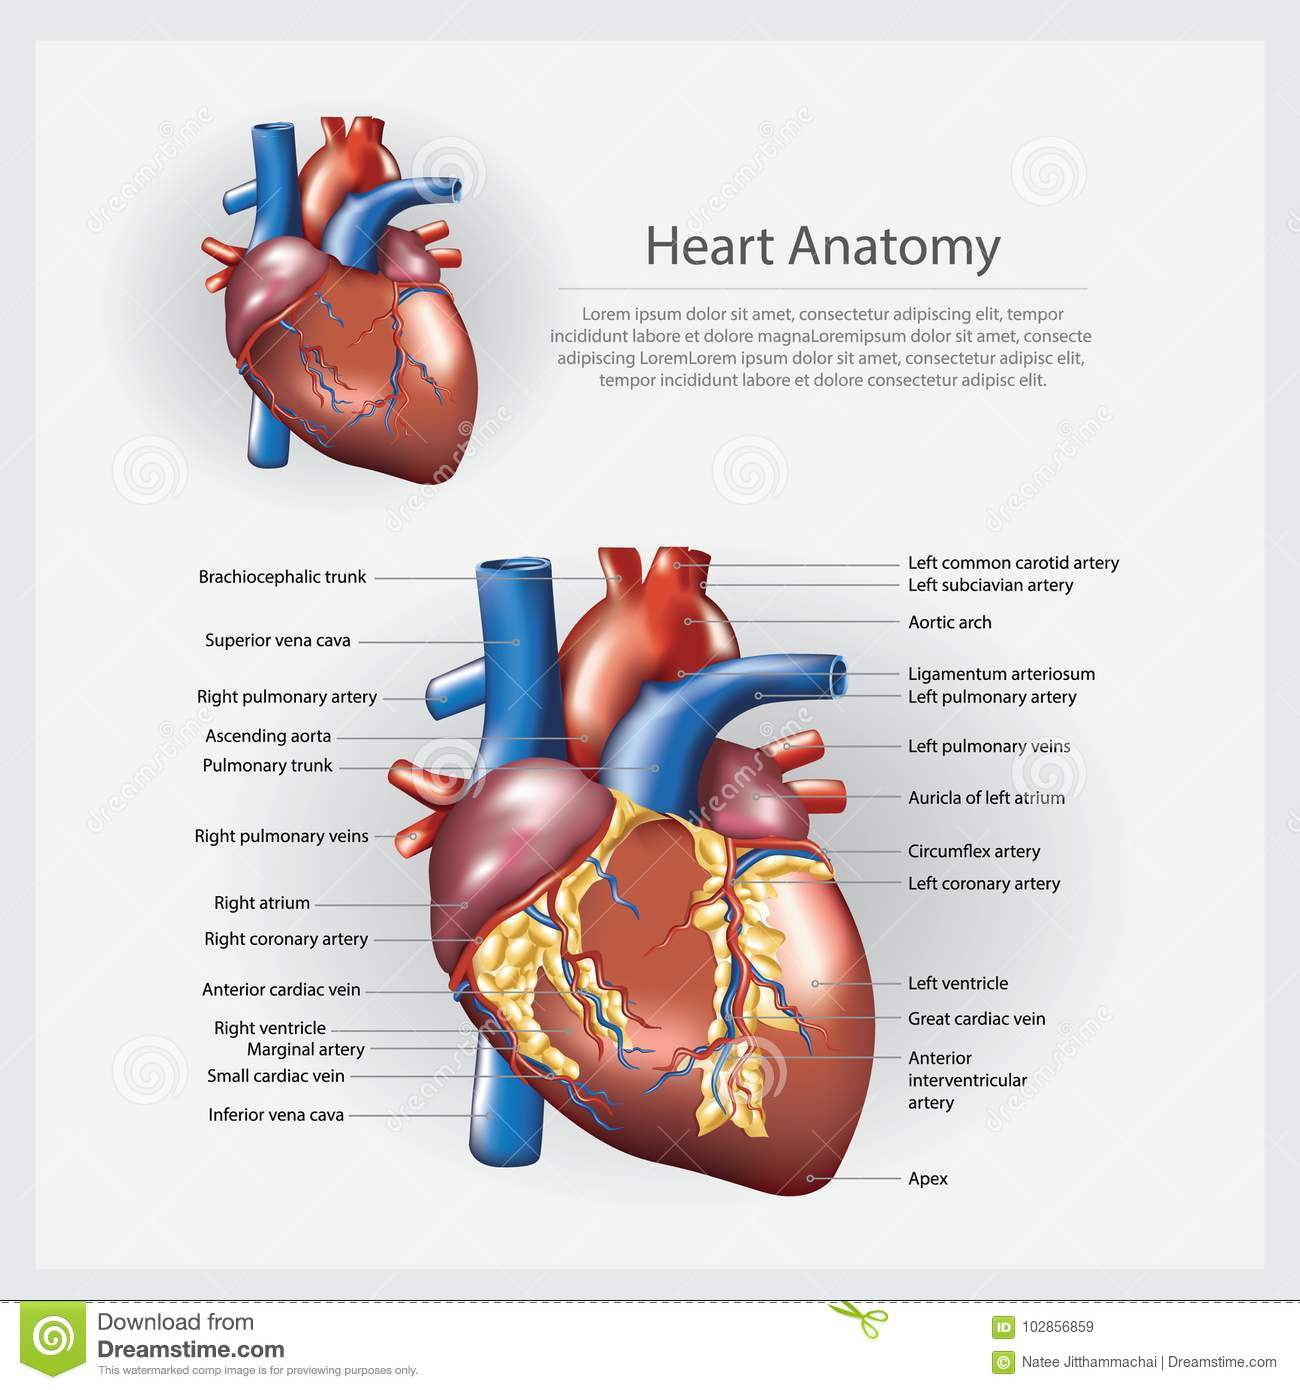 Human Heart Anatomy Vector Illustration Stock Vector Illustration